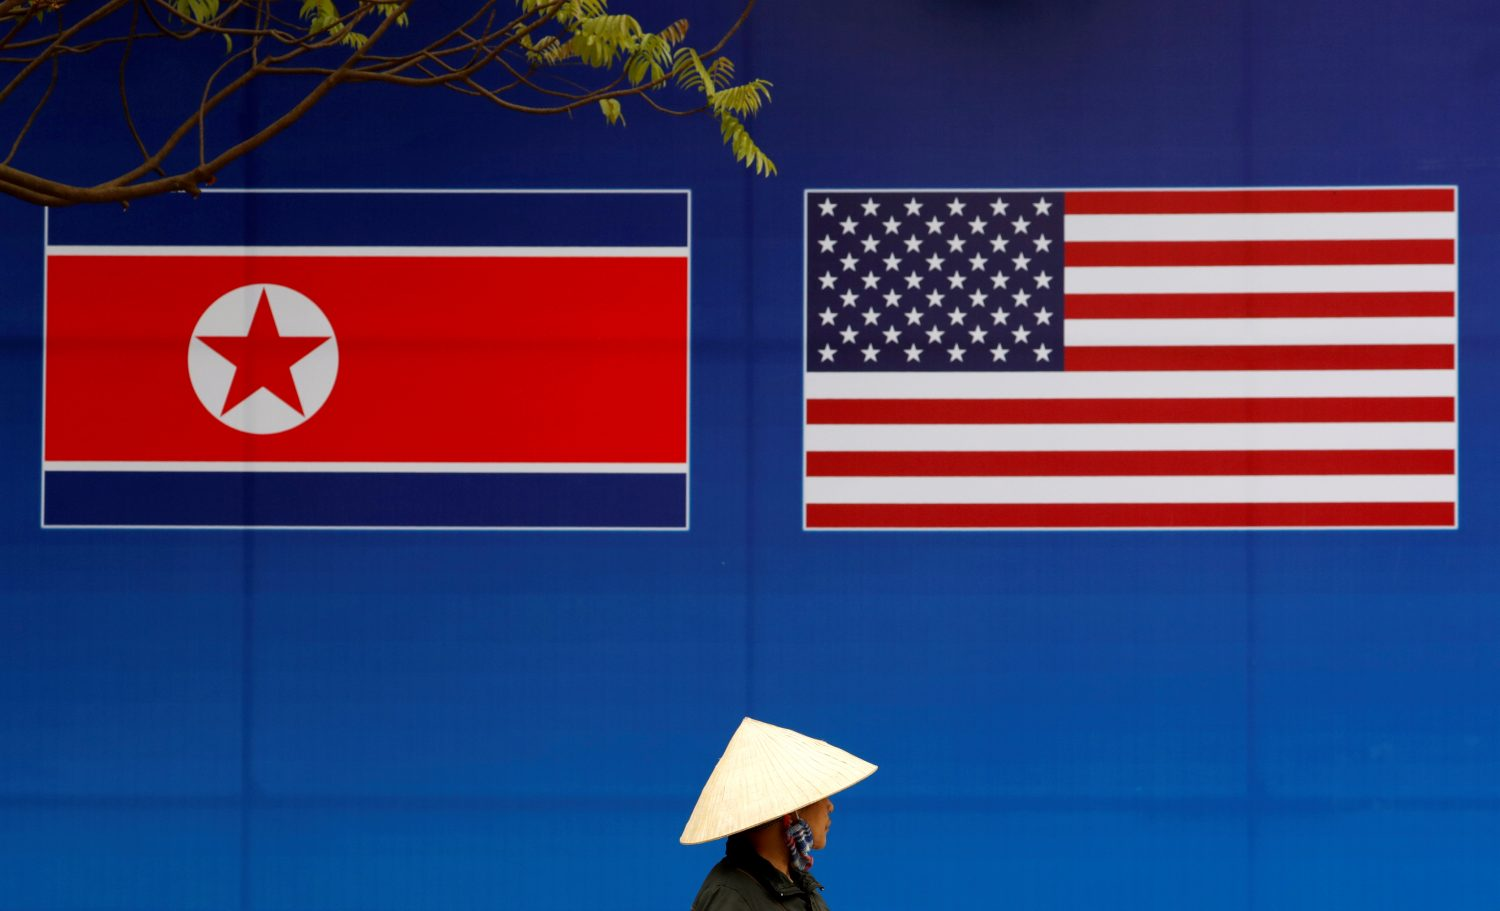 A person walks past a banner showing North Korean and U.S. flags ahead of the North Korea-U.S. summit in Hanoi, Vietnam, February 25, 2019. REUTERS/Kim Kyung-Hoon